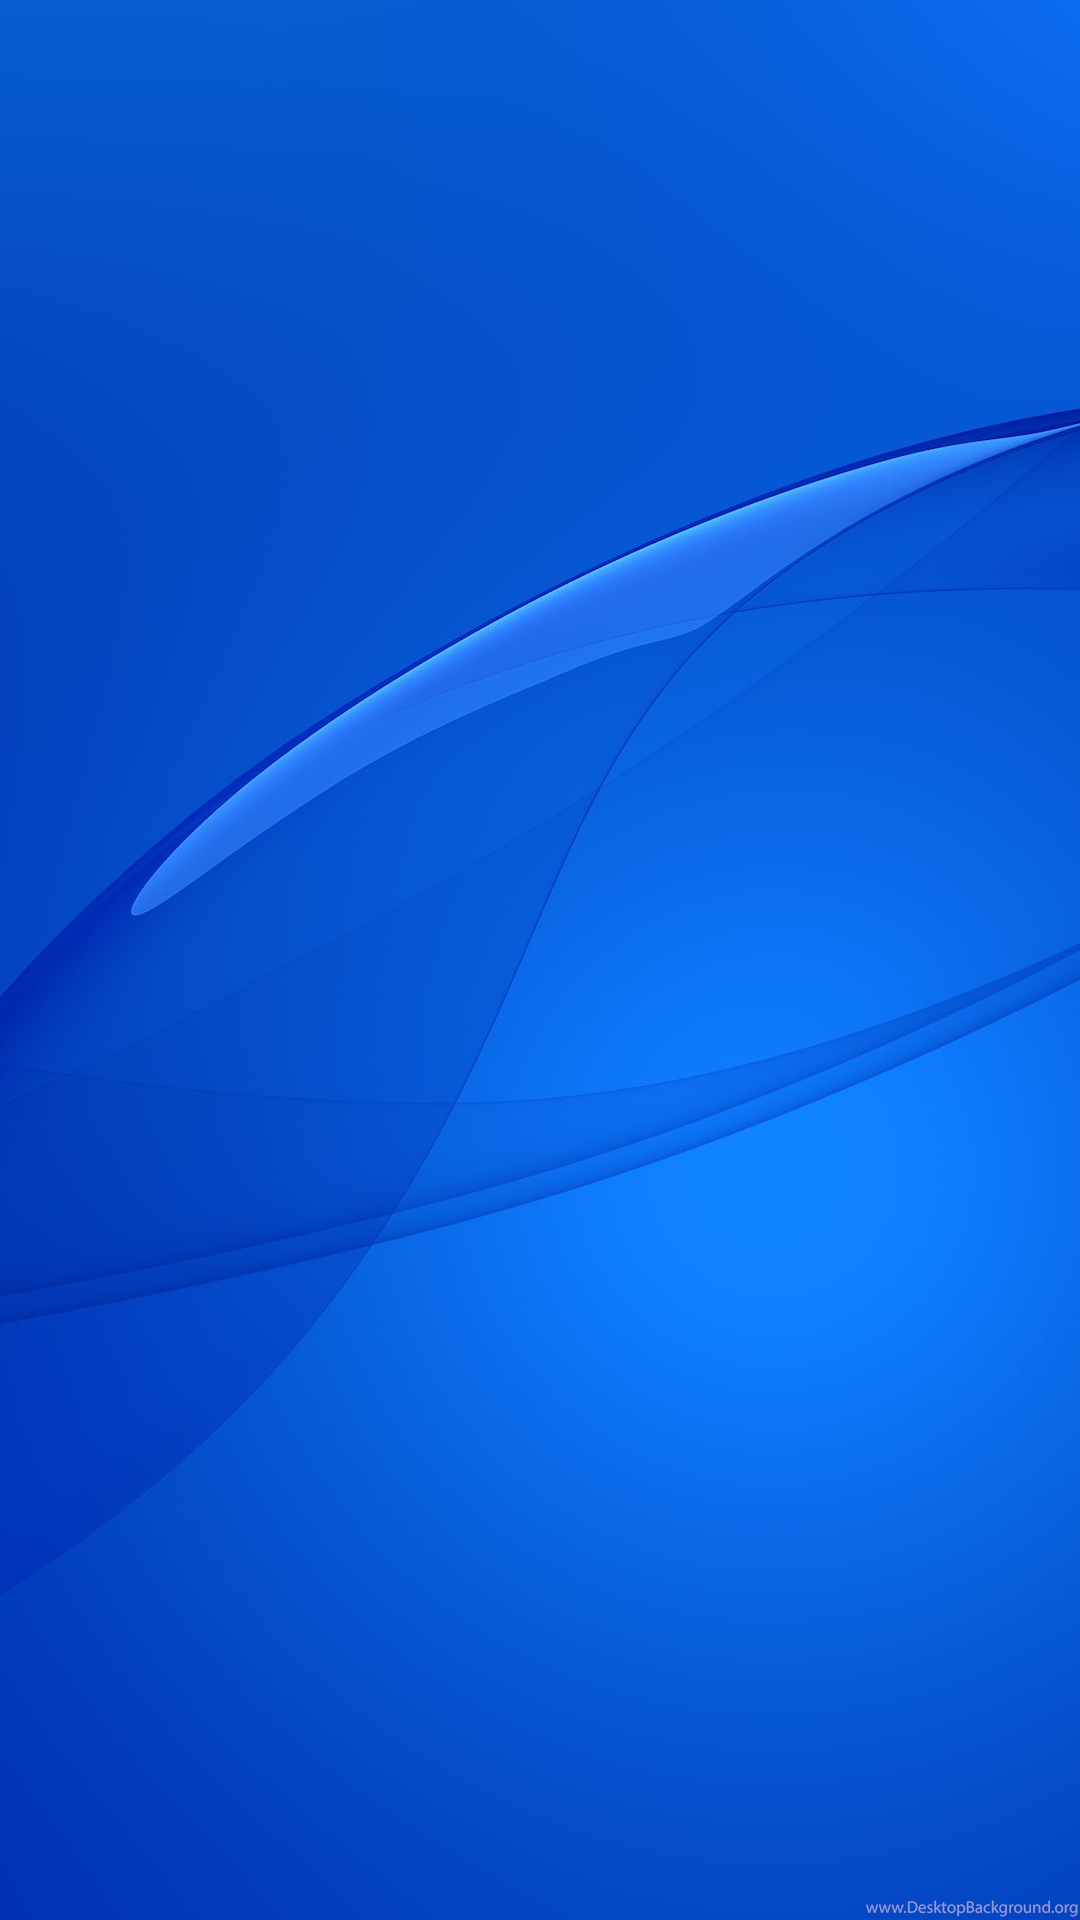 sony xperia z3 wallpapers available for download desktop